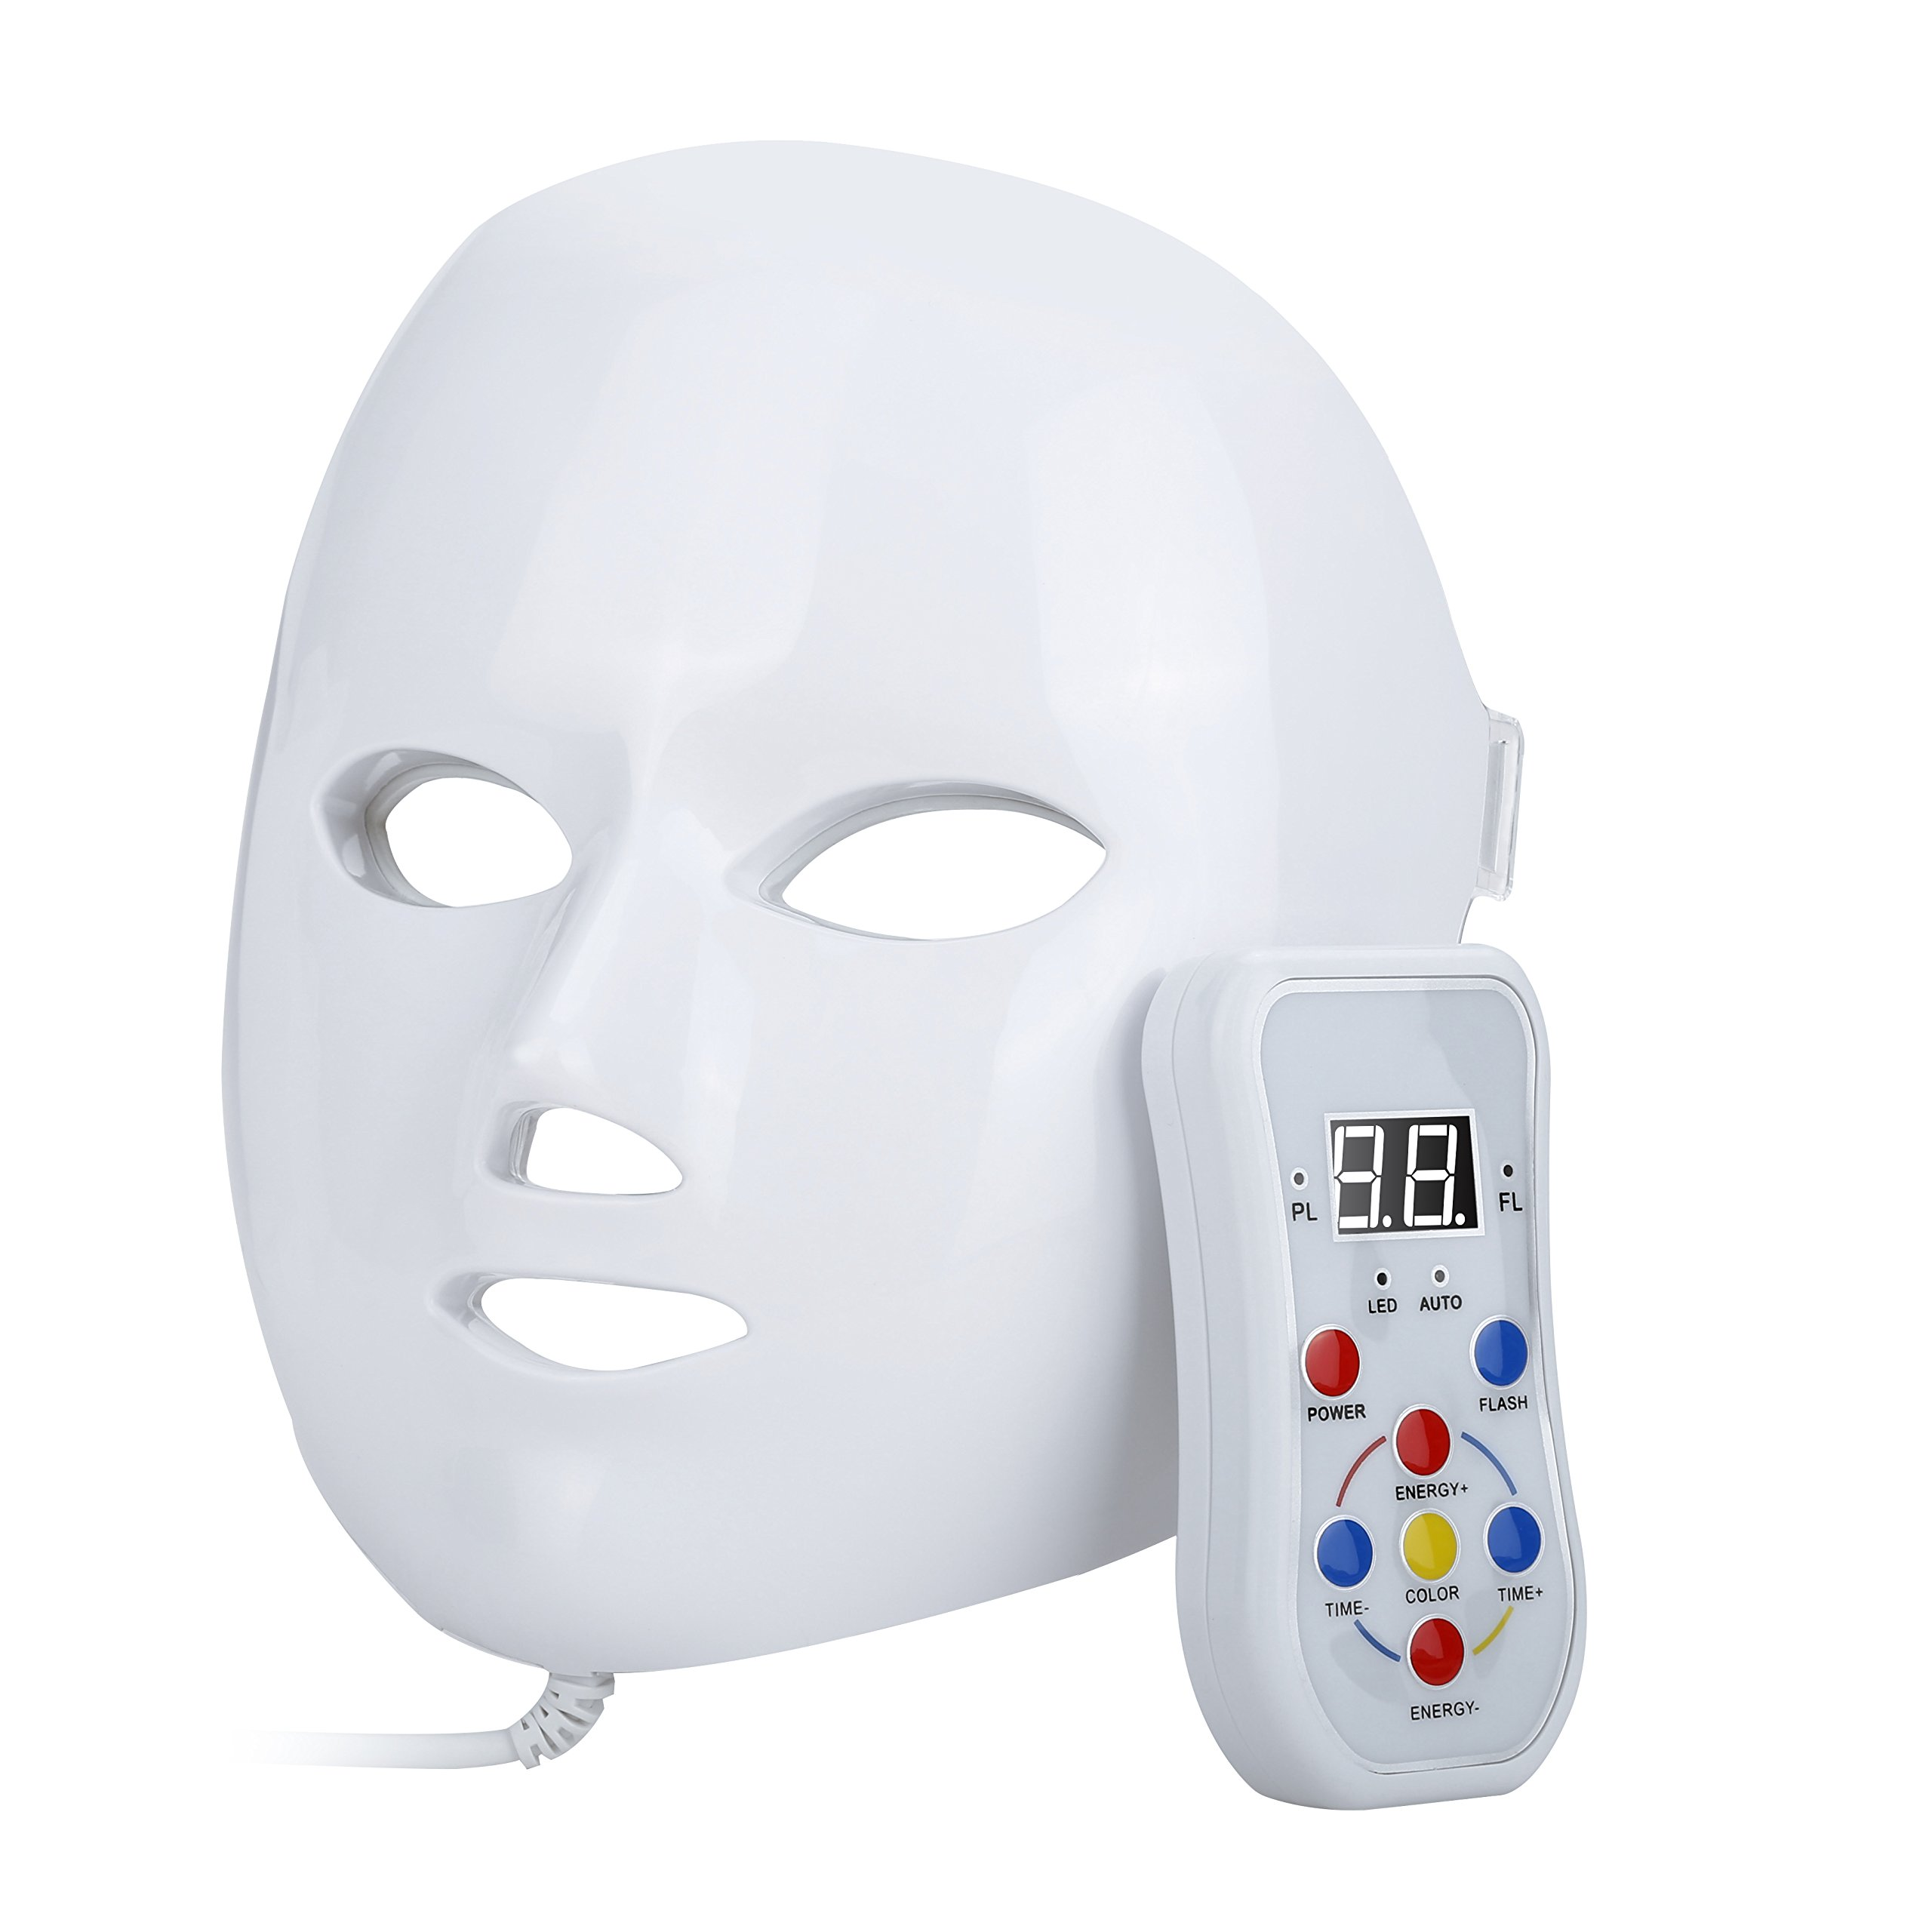 NEWKEY LED Photon Light Therapy Facial Mask Professional Anti Aging Skin Care Device for Face Whitening and Smooth - 1 YEAR WARRANTY